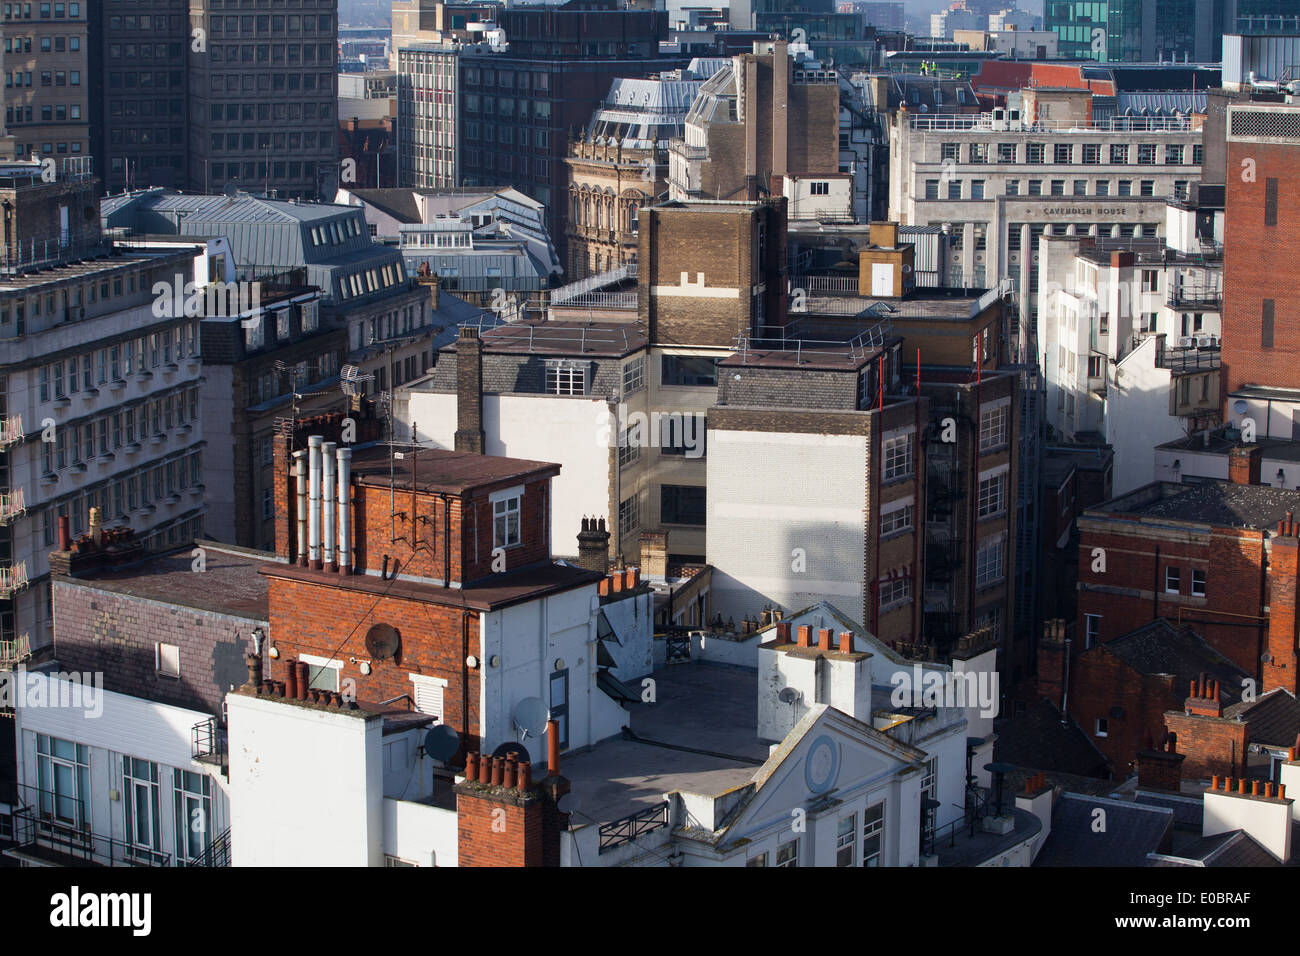 The Urban Sprawl of Birmingham City Centre showing the an area of shops and offices and living accommodation. - Stock Image